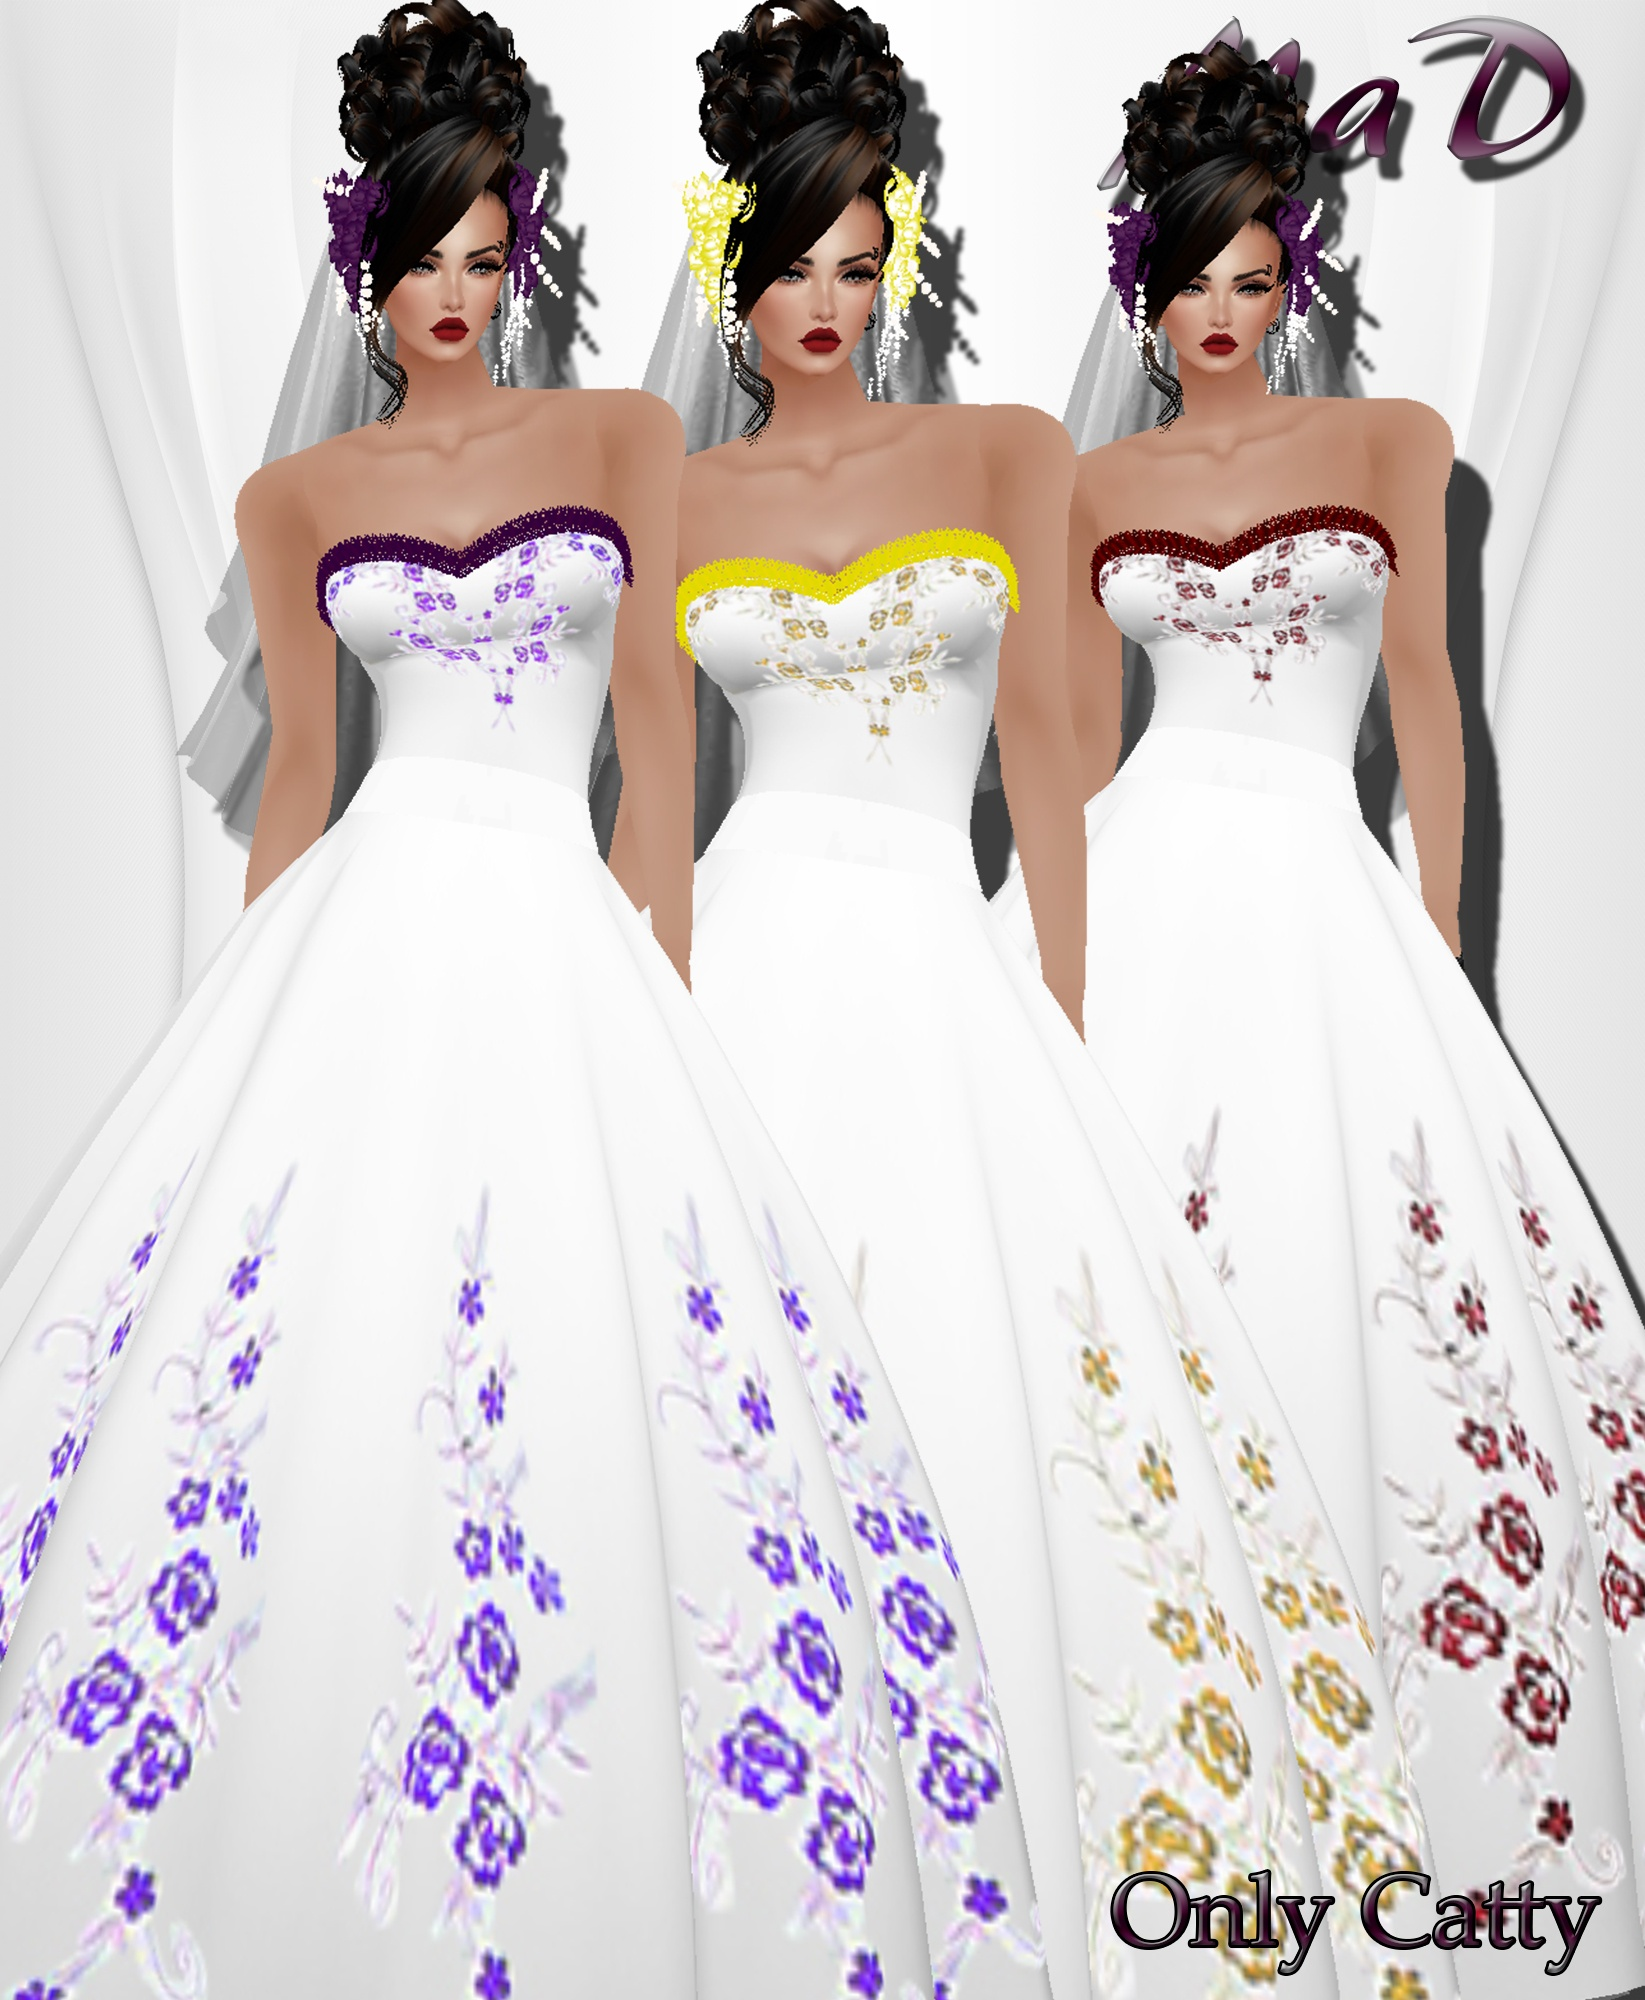 MaD Wedding Flower 3 Collors ONLY CATTY